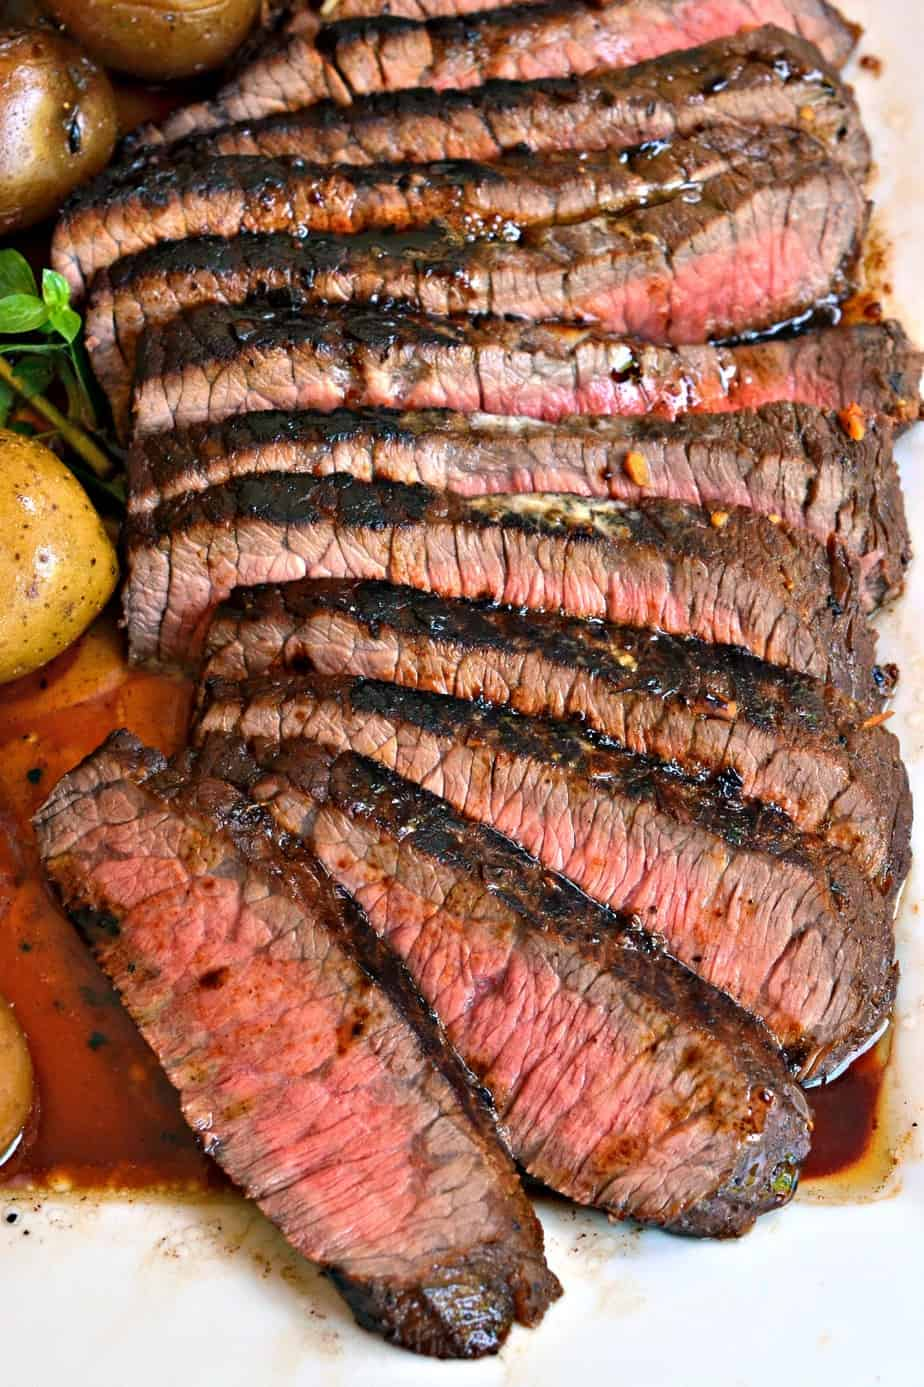 This London Broil recipe combines an easy tenderizing marinade with tips on cooking this less expensive cut of beef.